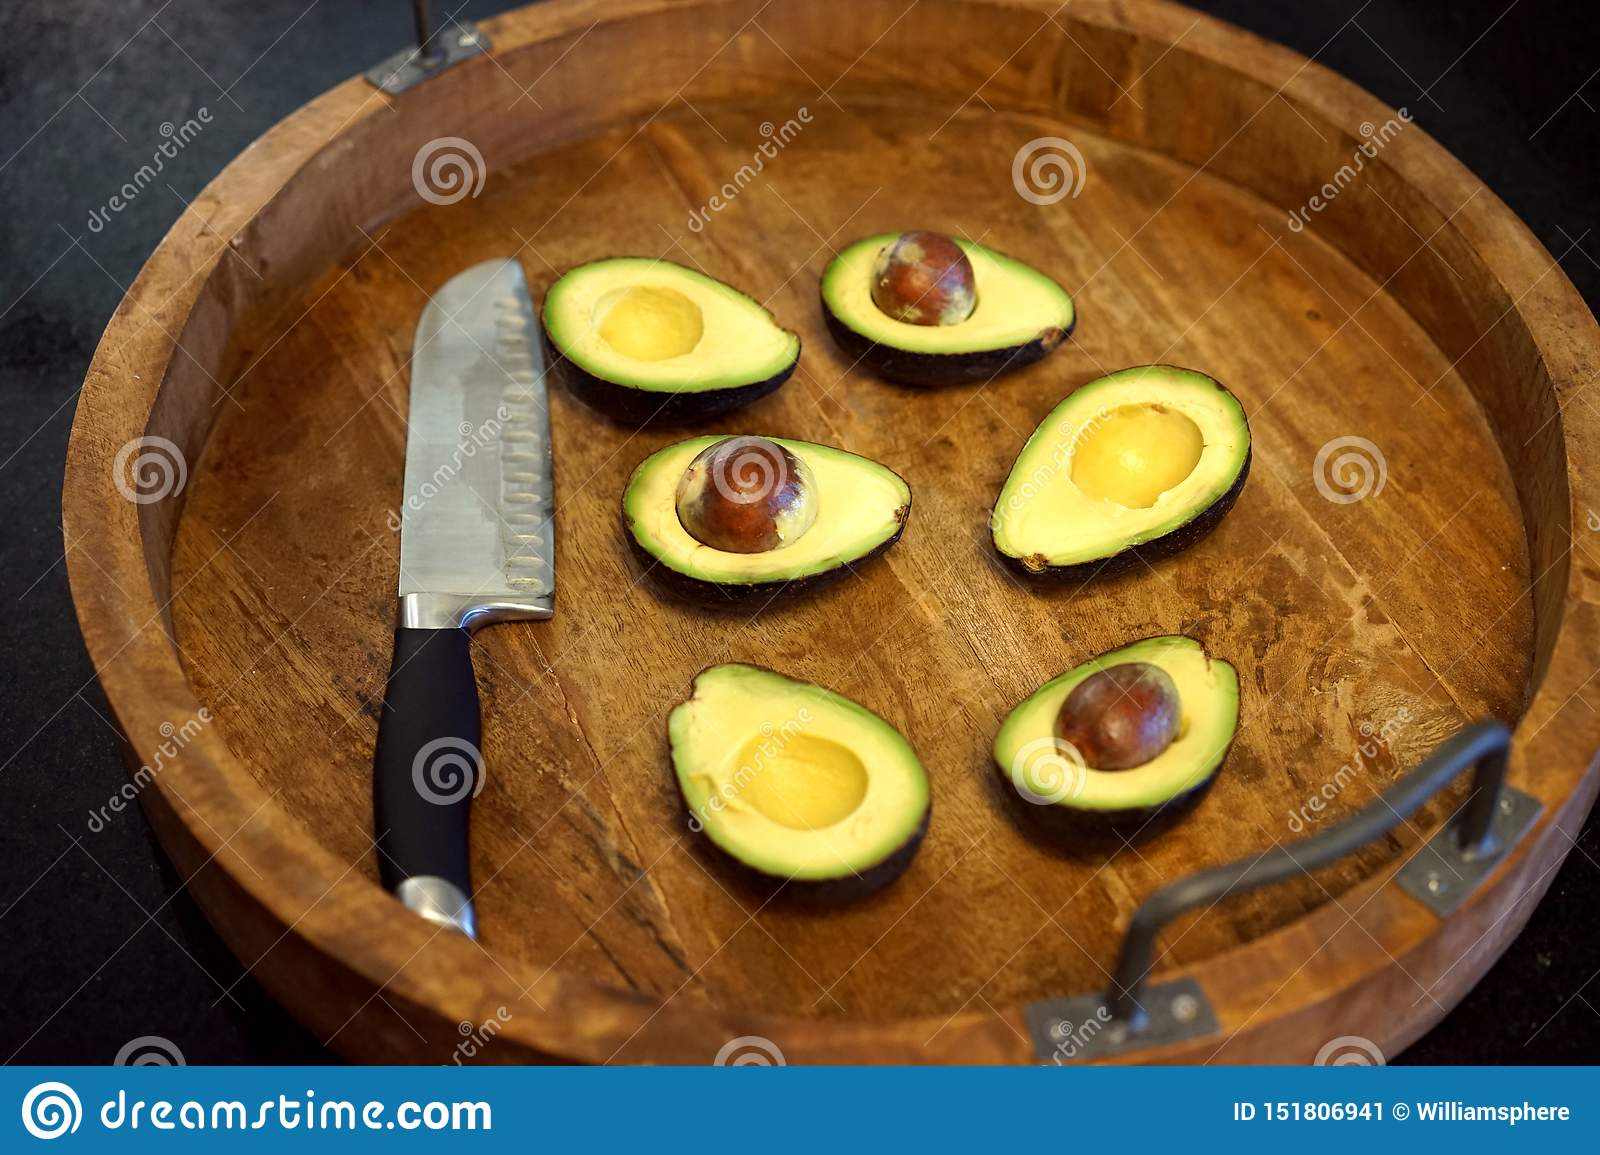 Ripe avocados offer lots of vitamins